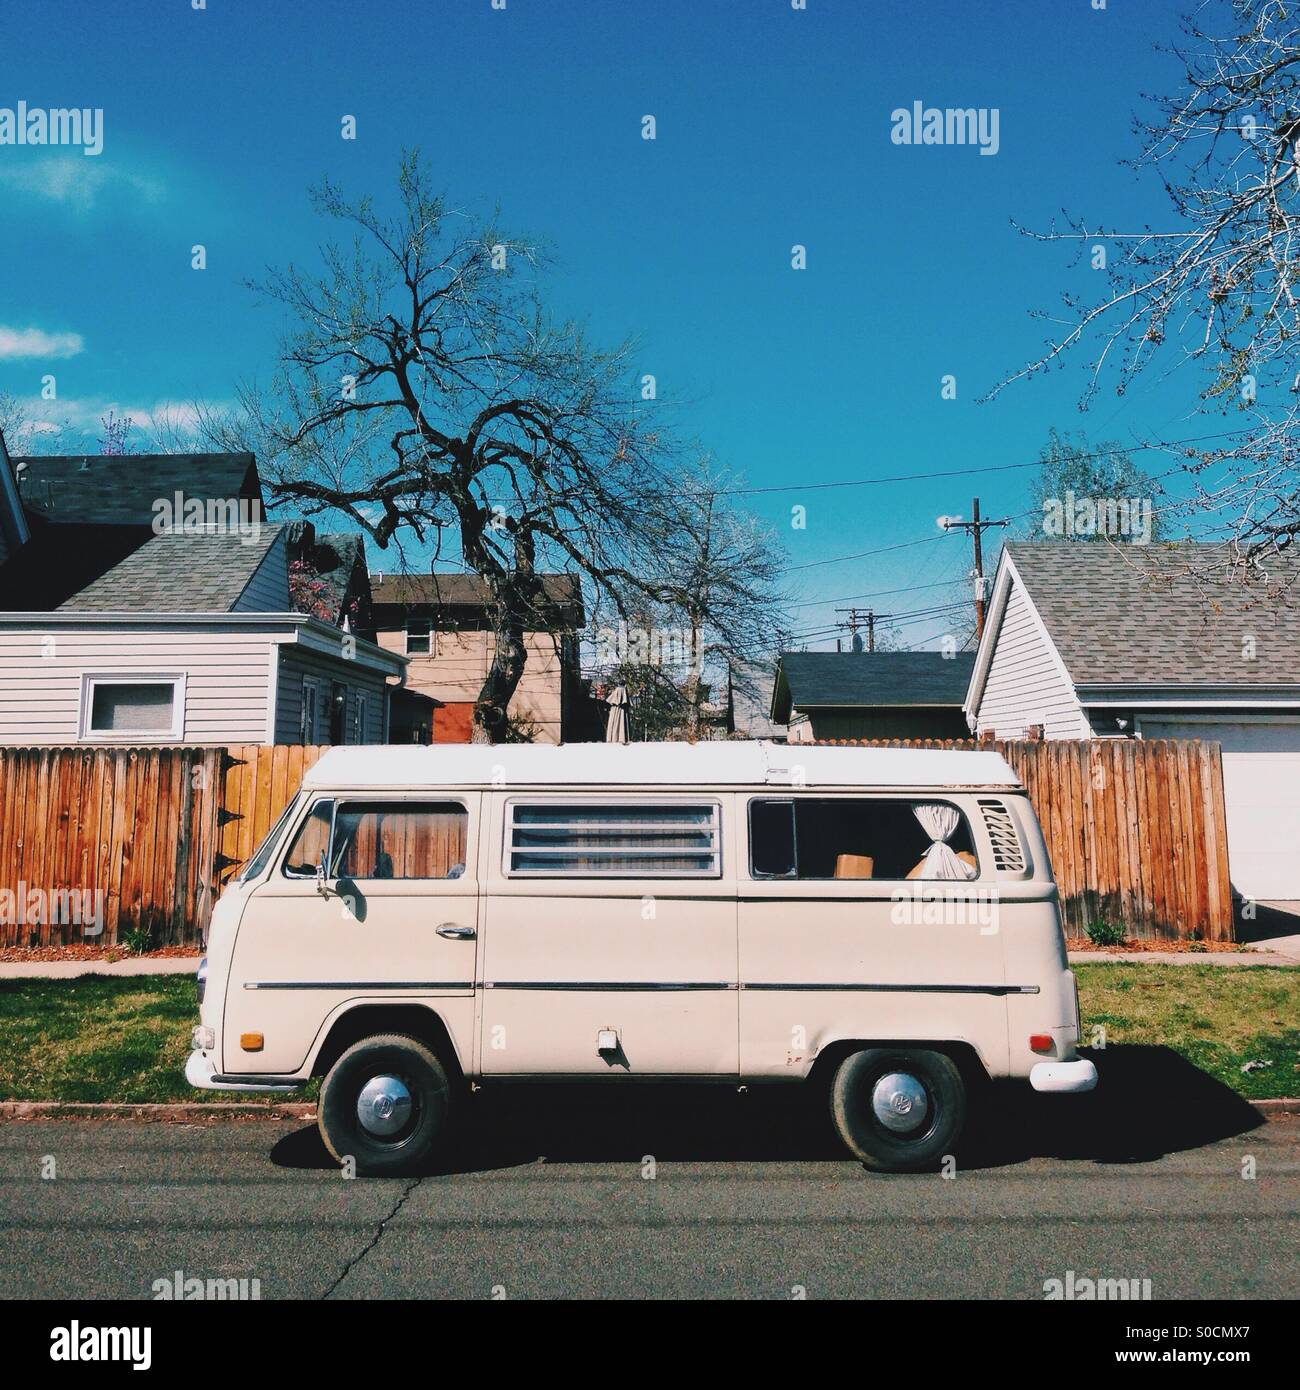 VW bus in the neighborhood - Stock Image